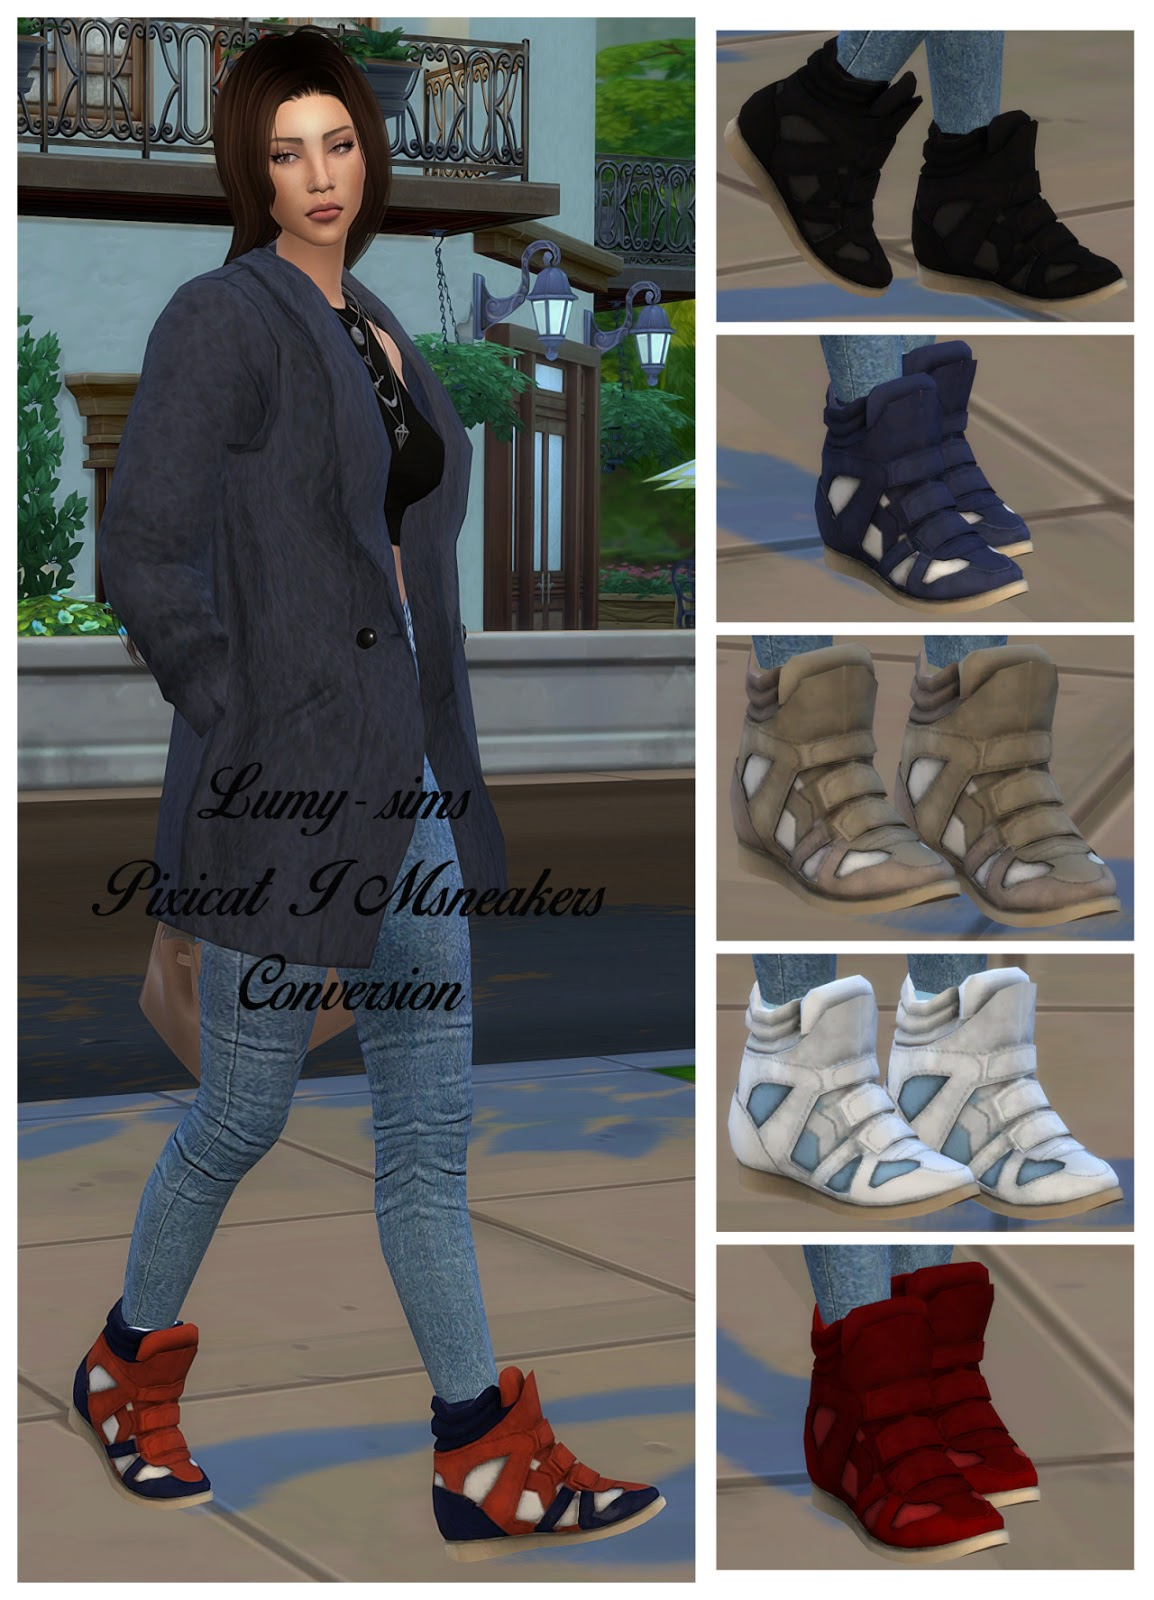 TS3 Sneaker Conversion by Lumy-sims